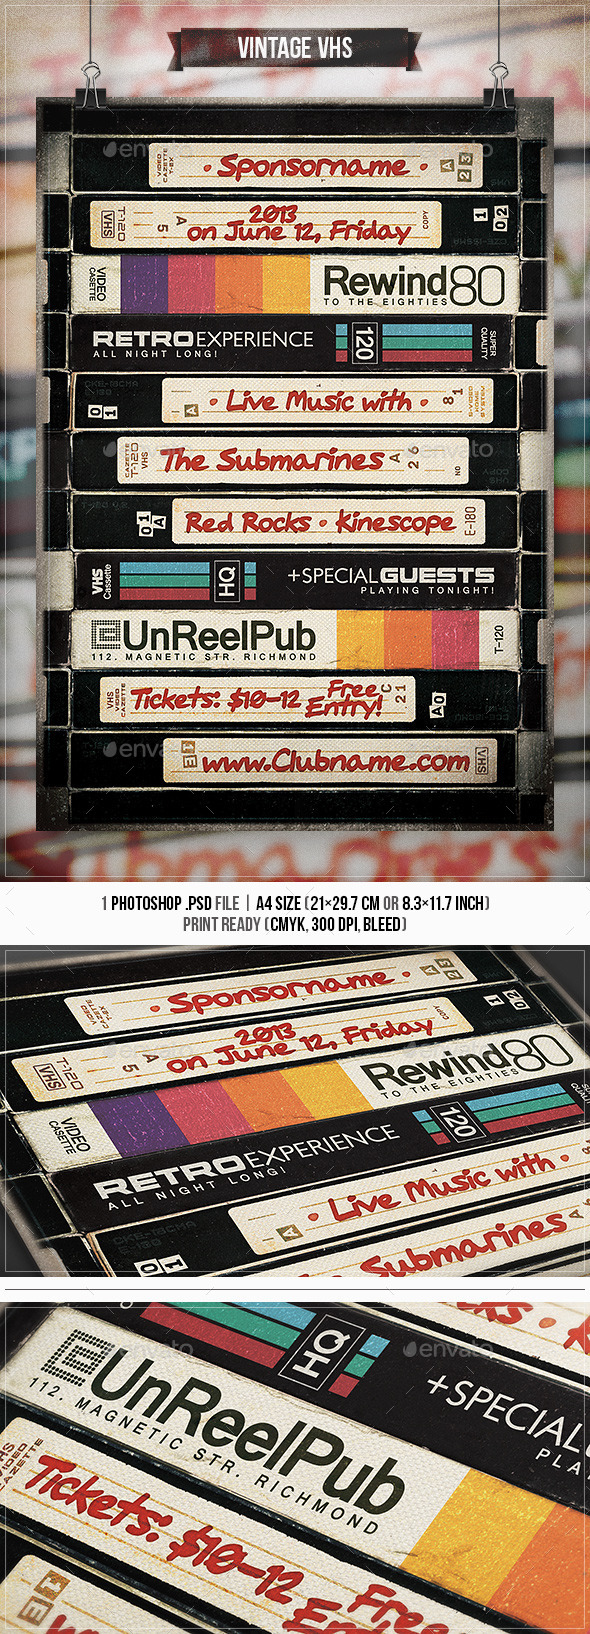 Vintage VHS - Flyer & Poster - Concerts Events